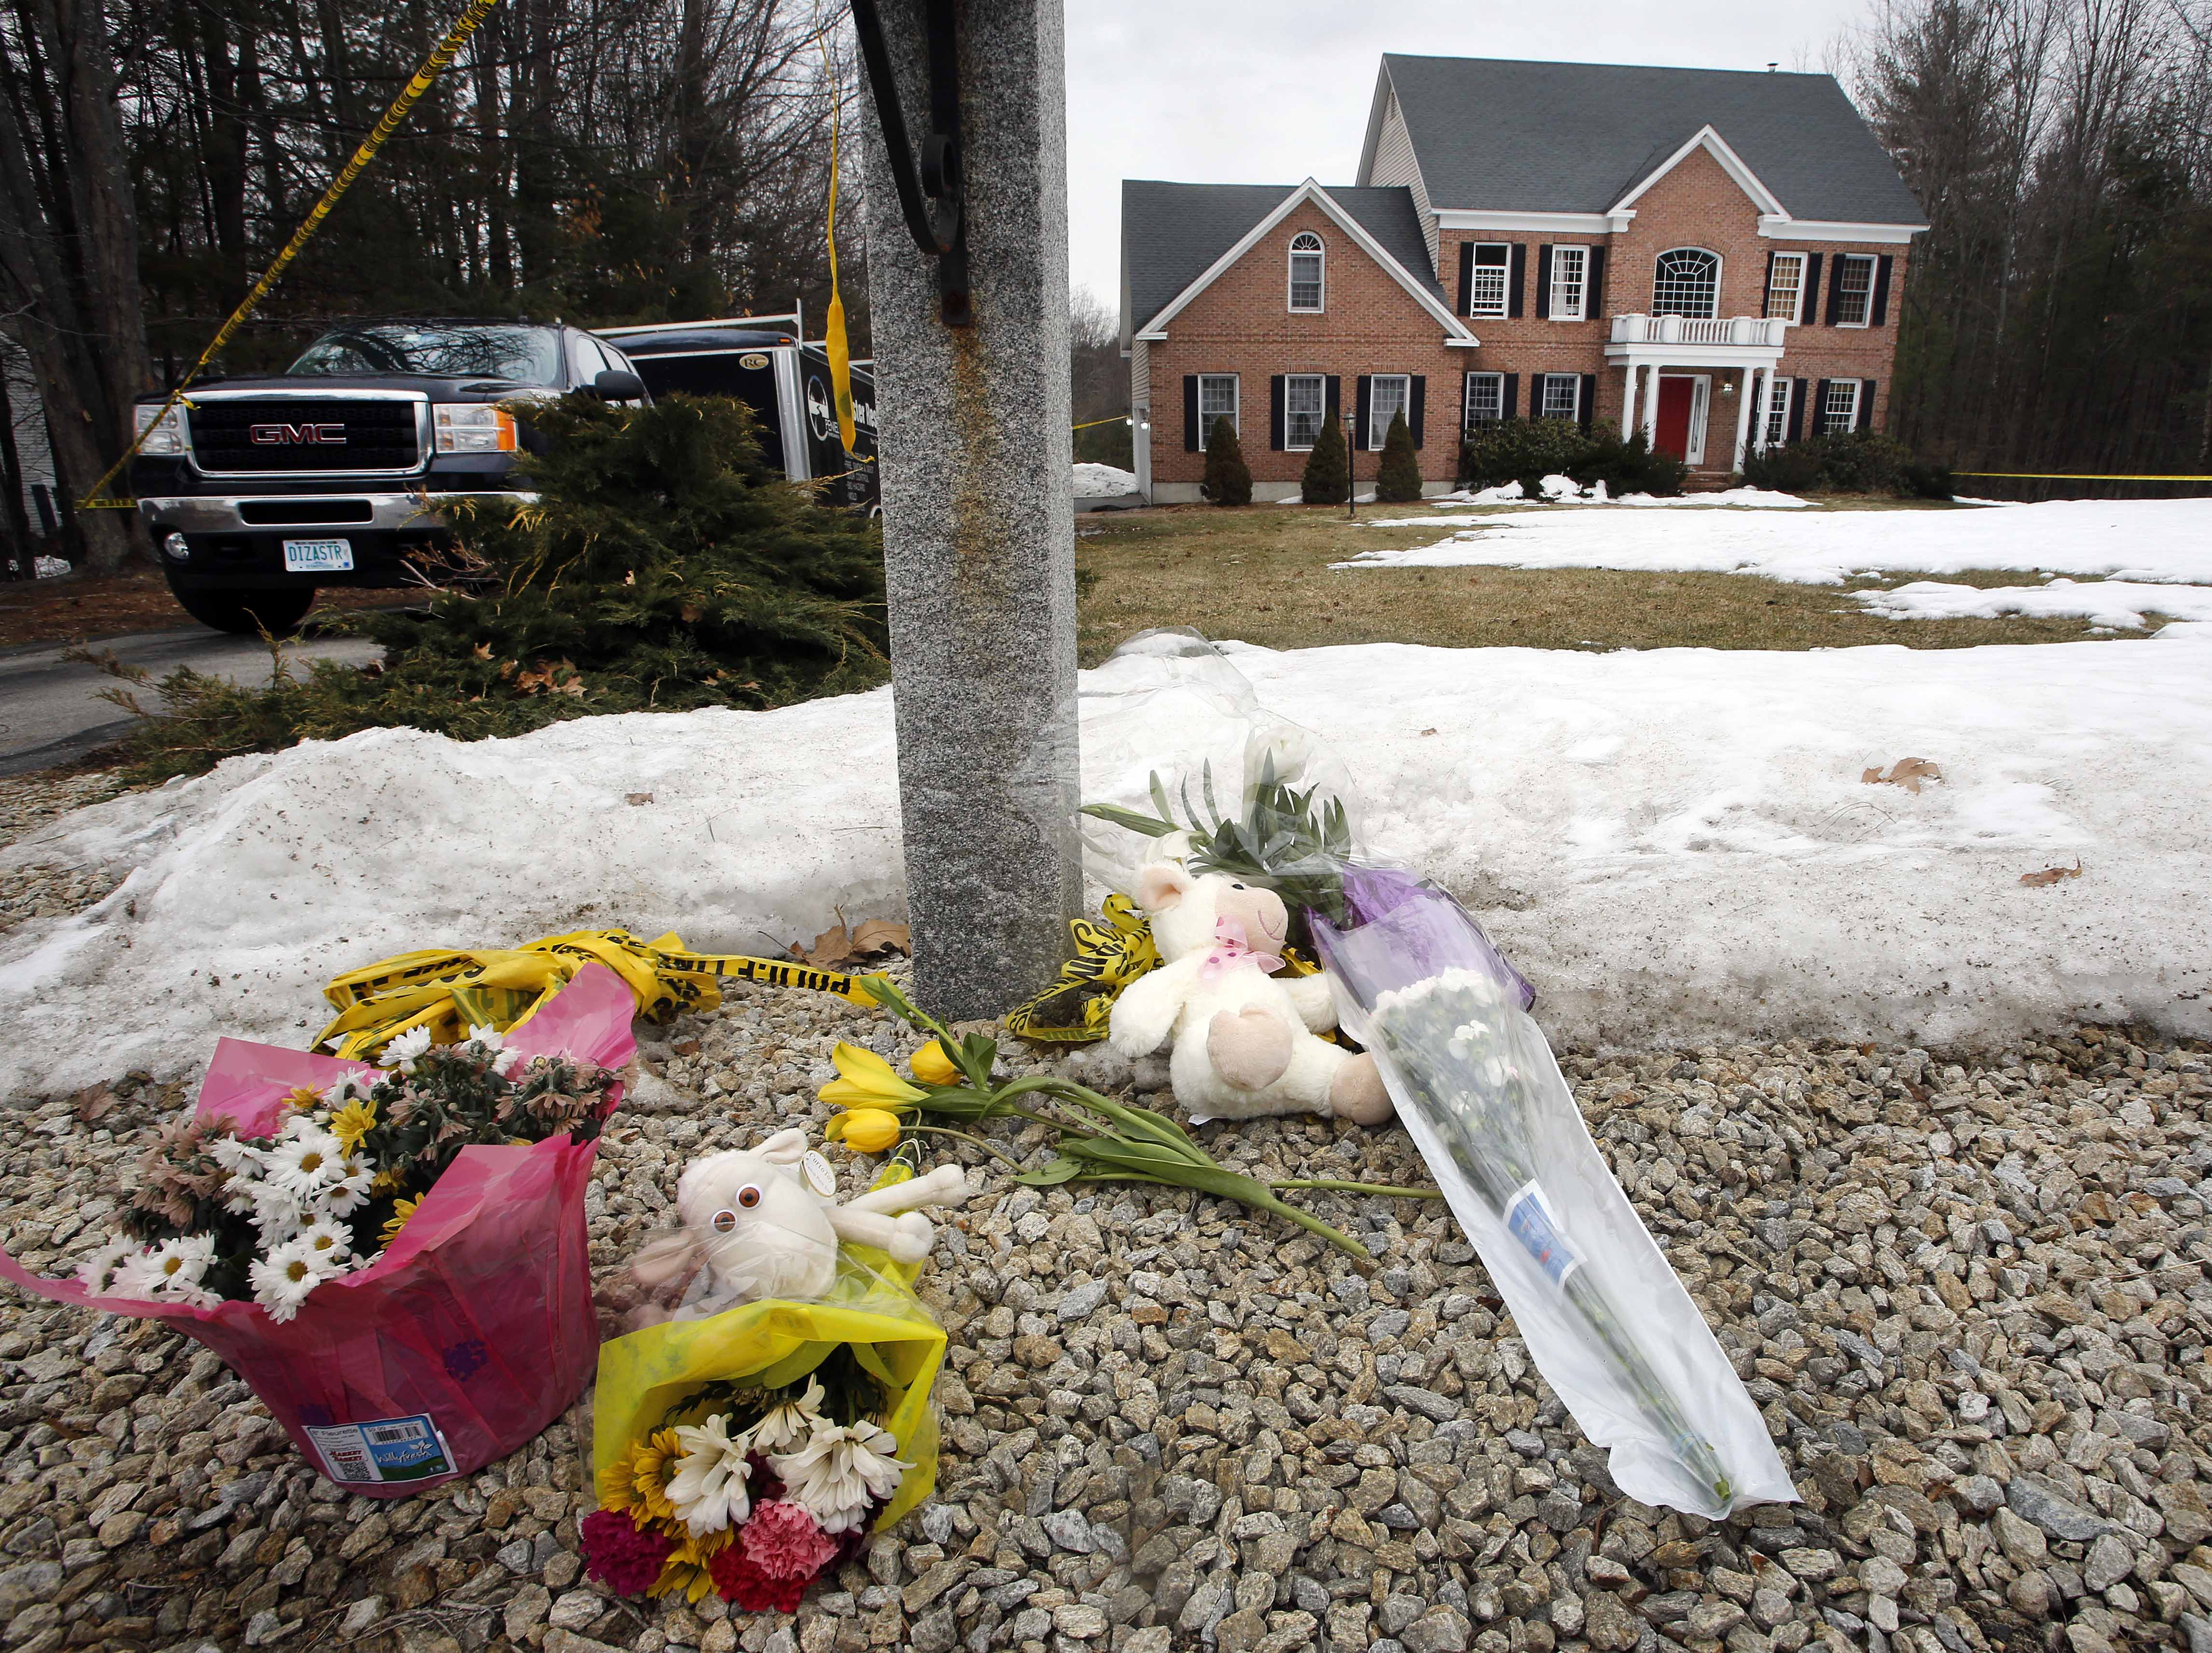 New Hampshire authorities: Mother killed daughters, self